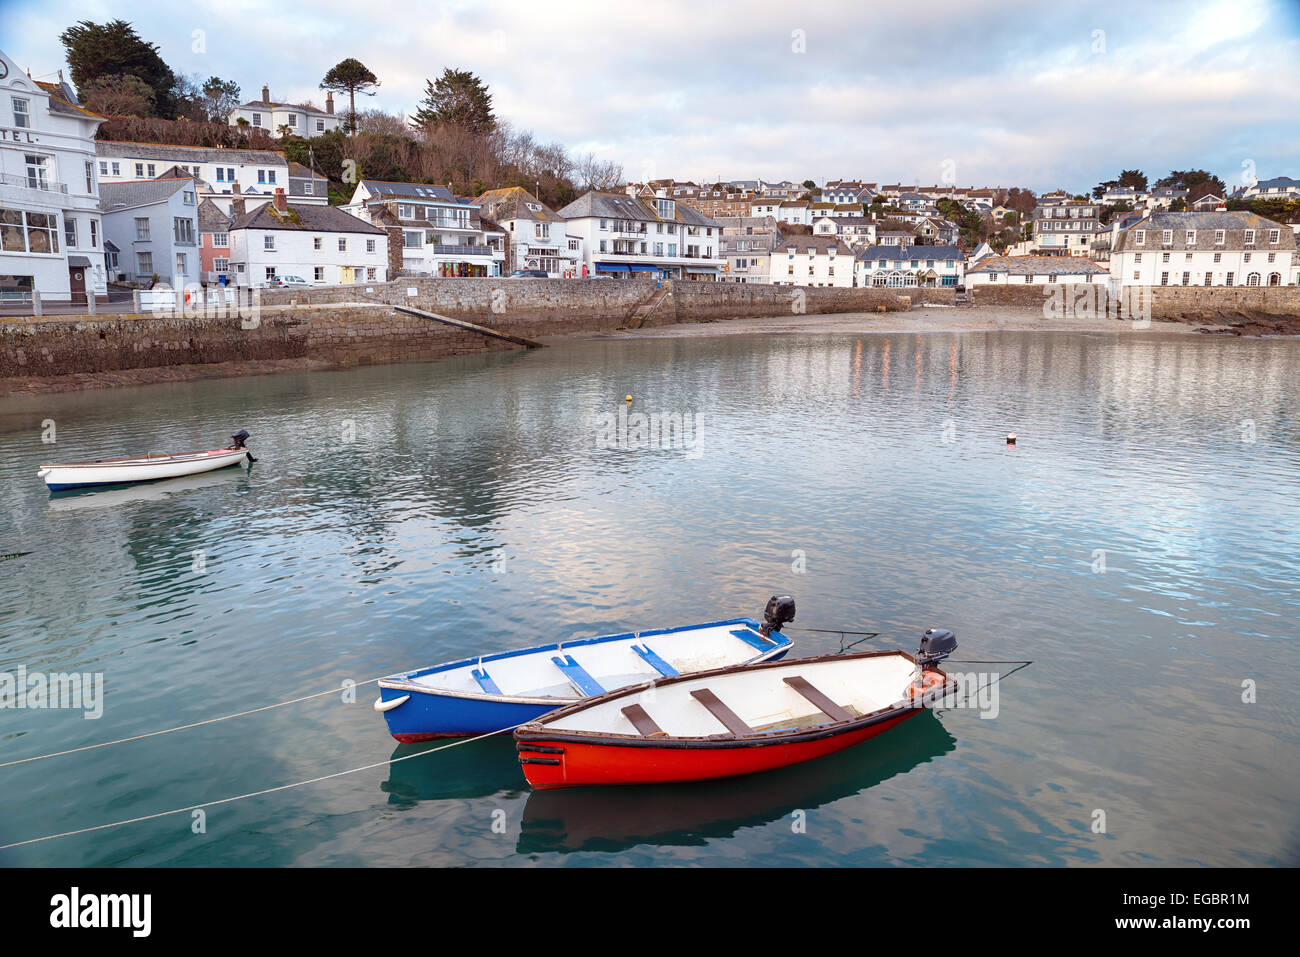 Evening at St Mawes a seaside resort on the south coast of Cornwall - Stock Image